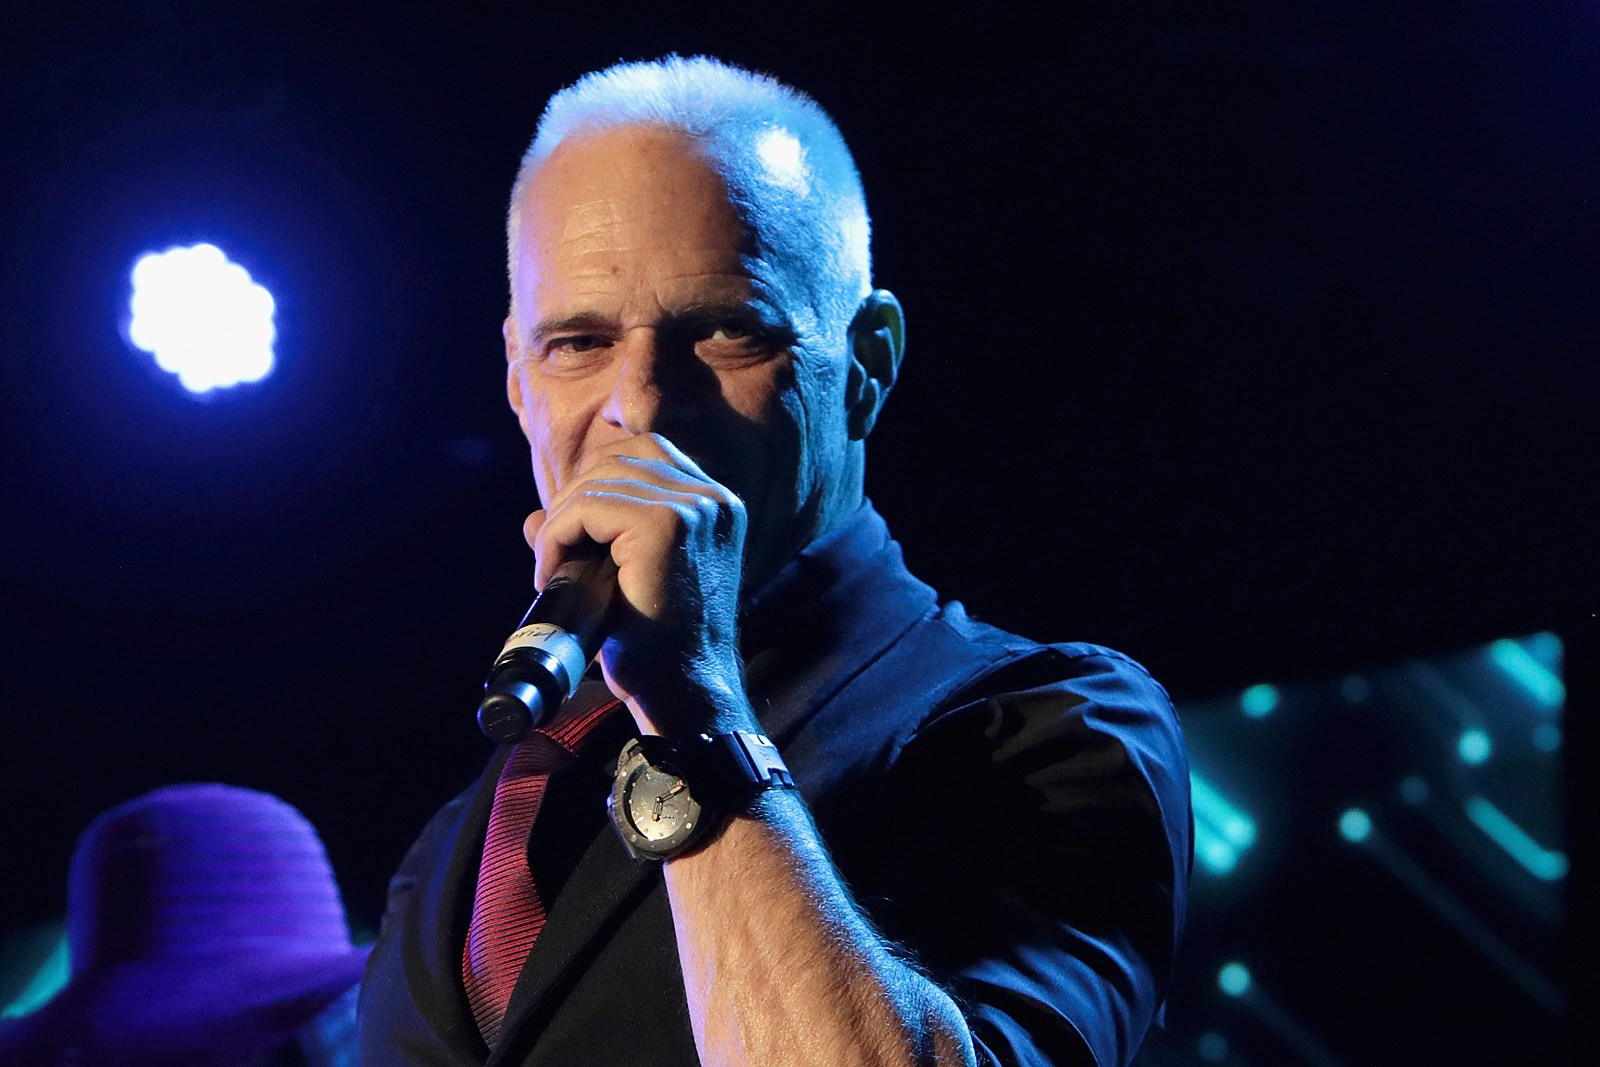 """David Lee Roth: """"'All Of My Preparation Comes From A Determination That's Based On Revenge And Fear'"""